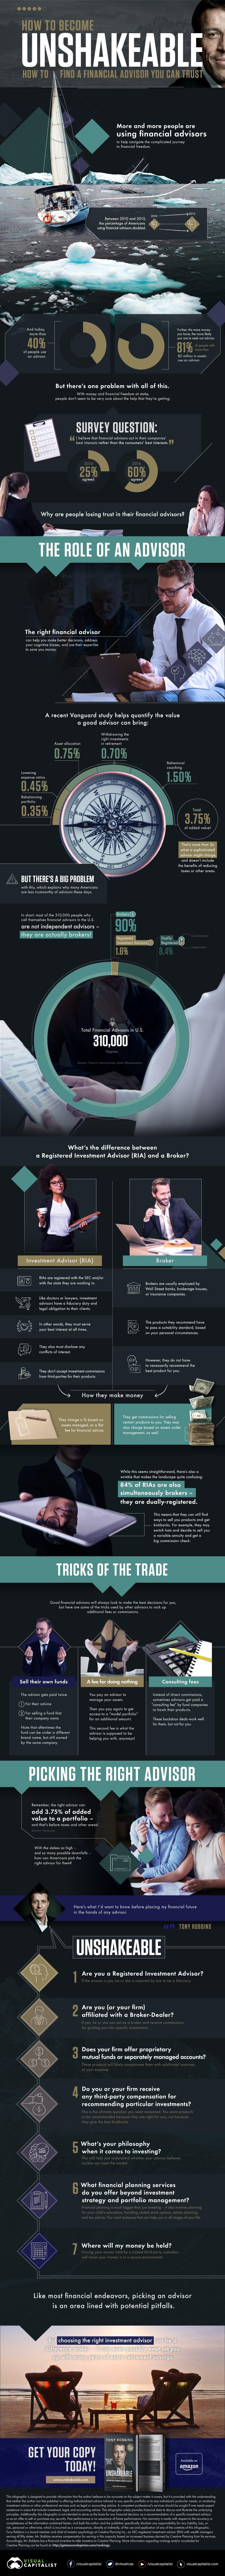 How to Find a Financial Advisor You Can Trust #infographic